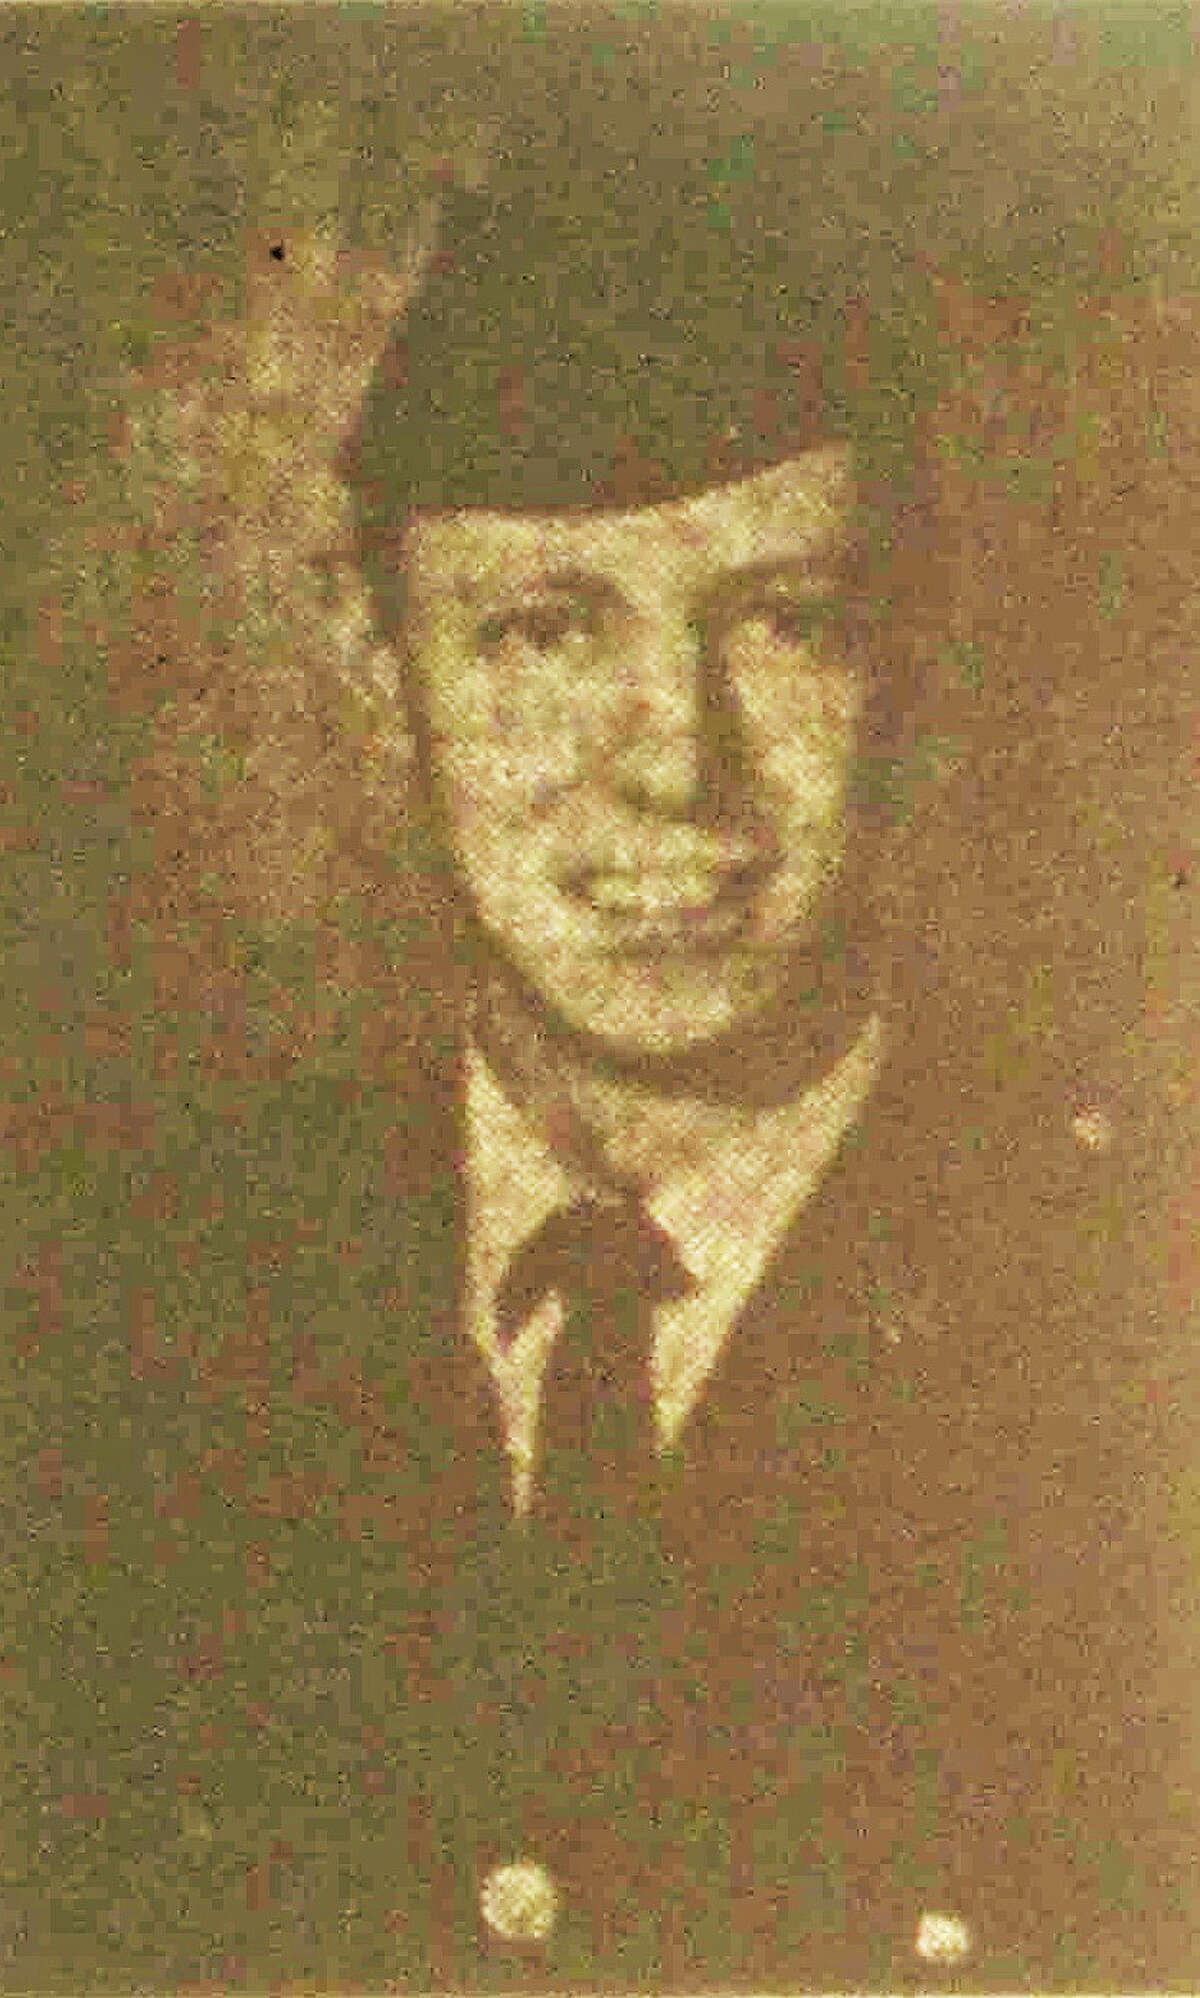 Army Staff Sgt. Michael Vagnone was killed in Vietnam in 1970.